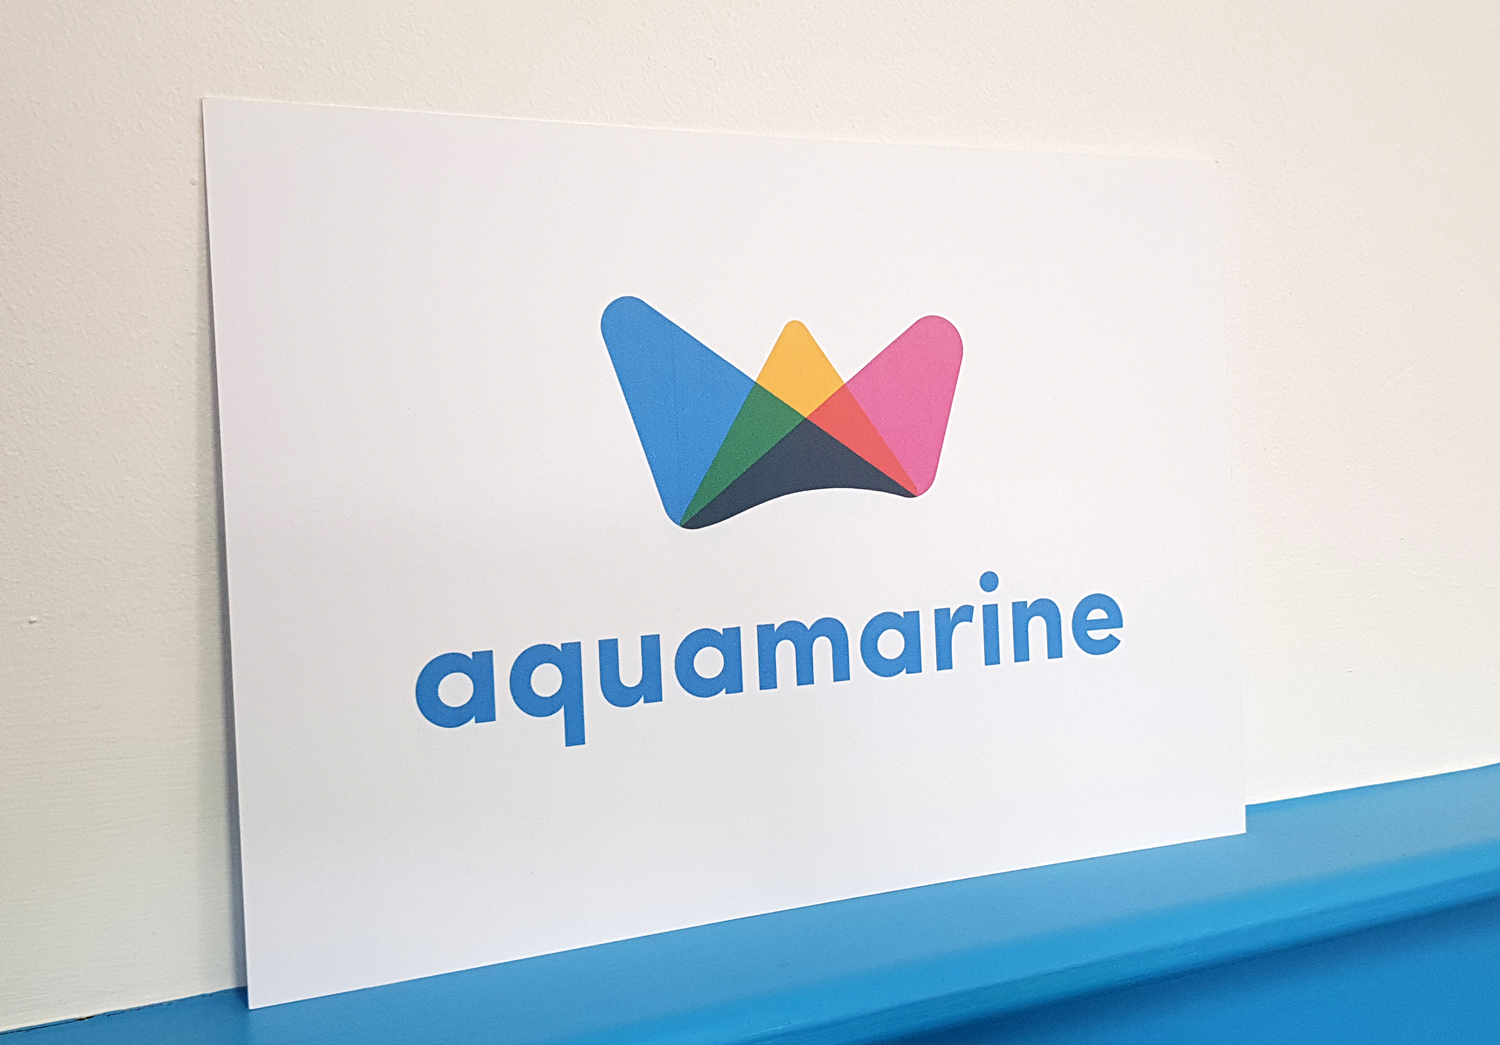 Aquamarine logo on paper